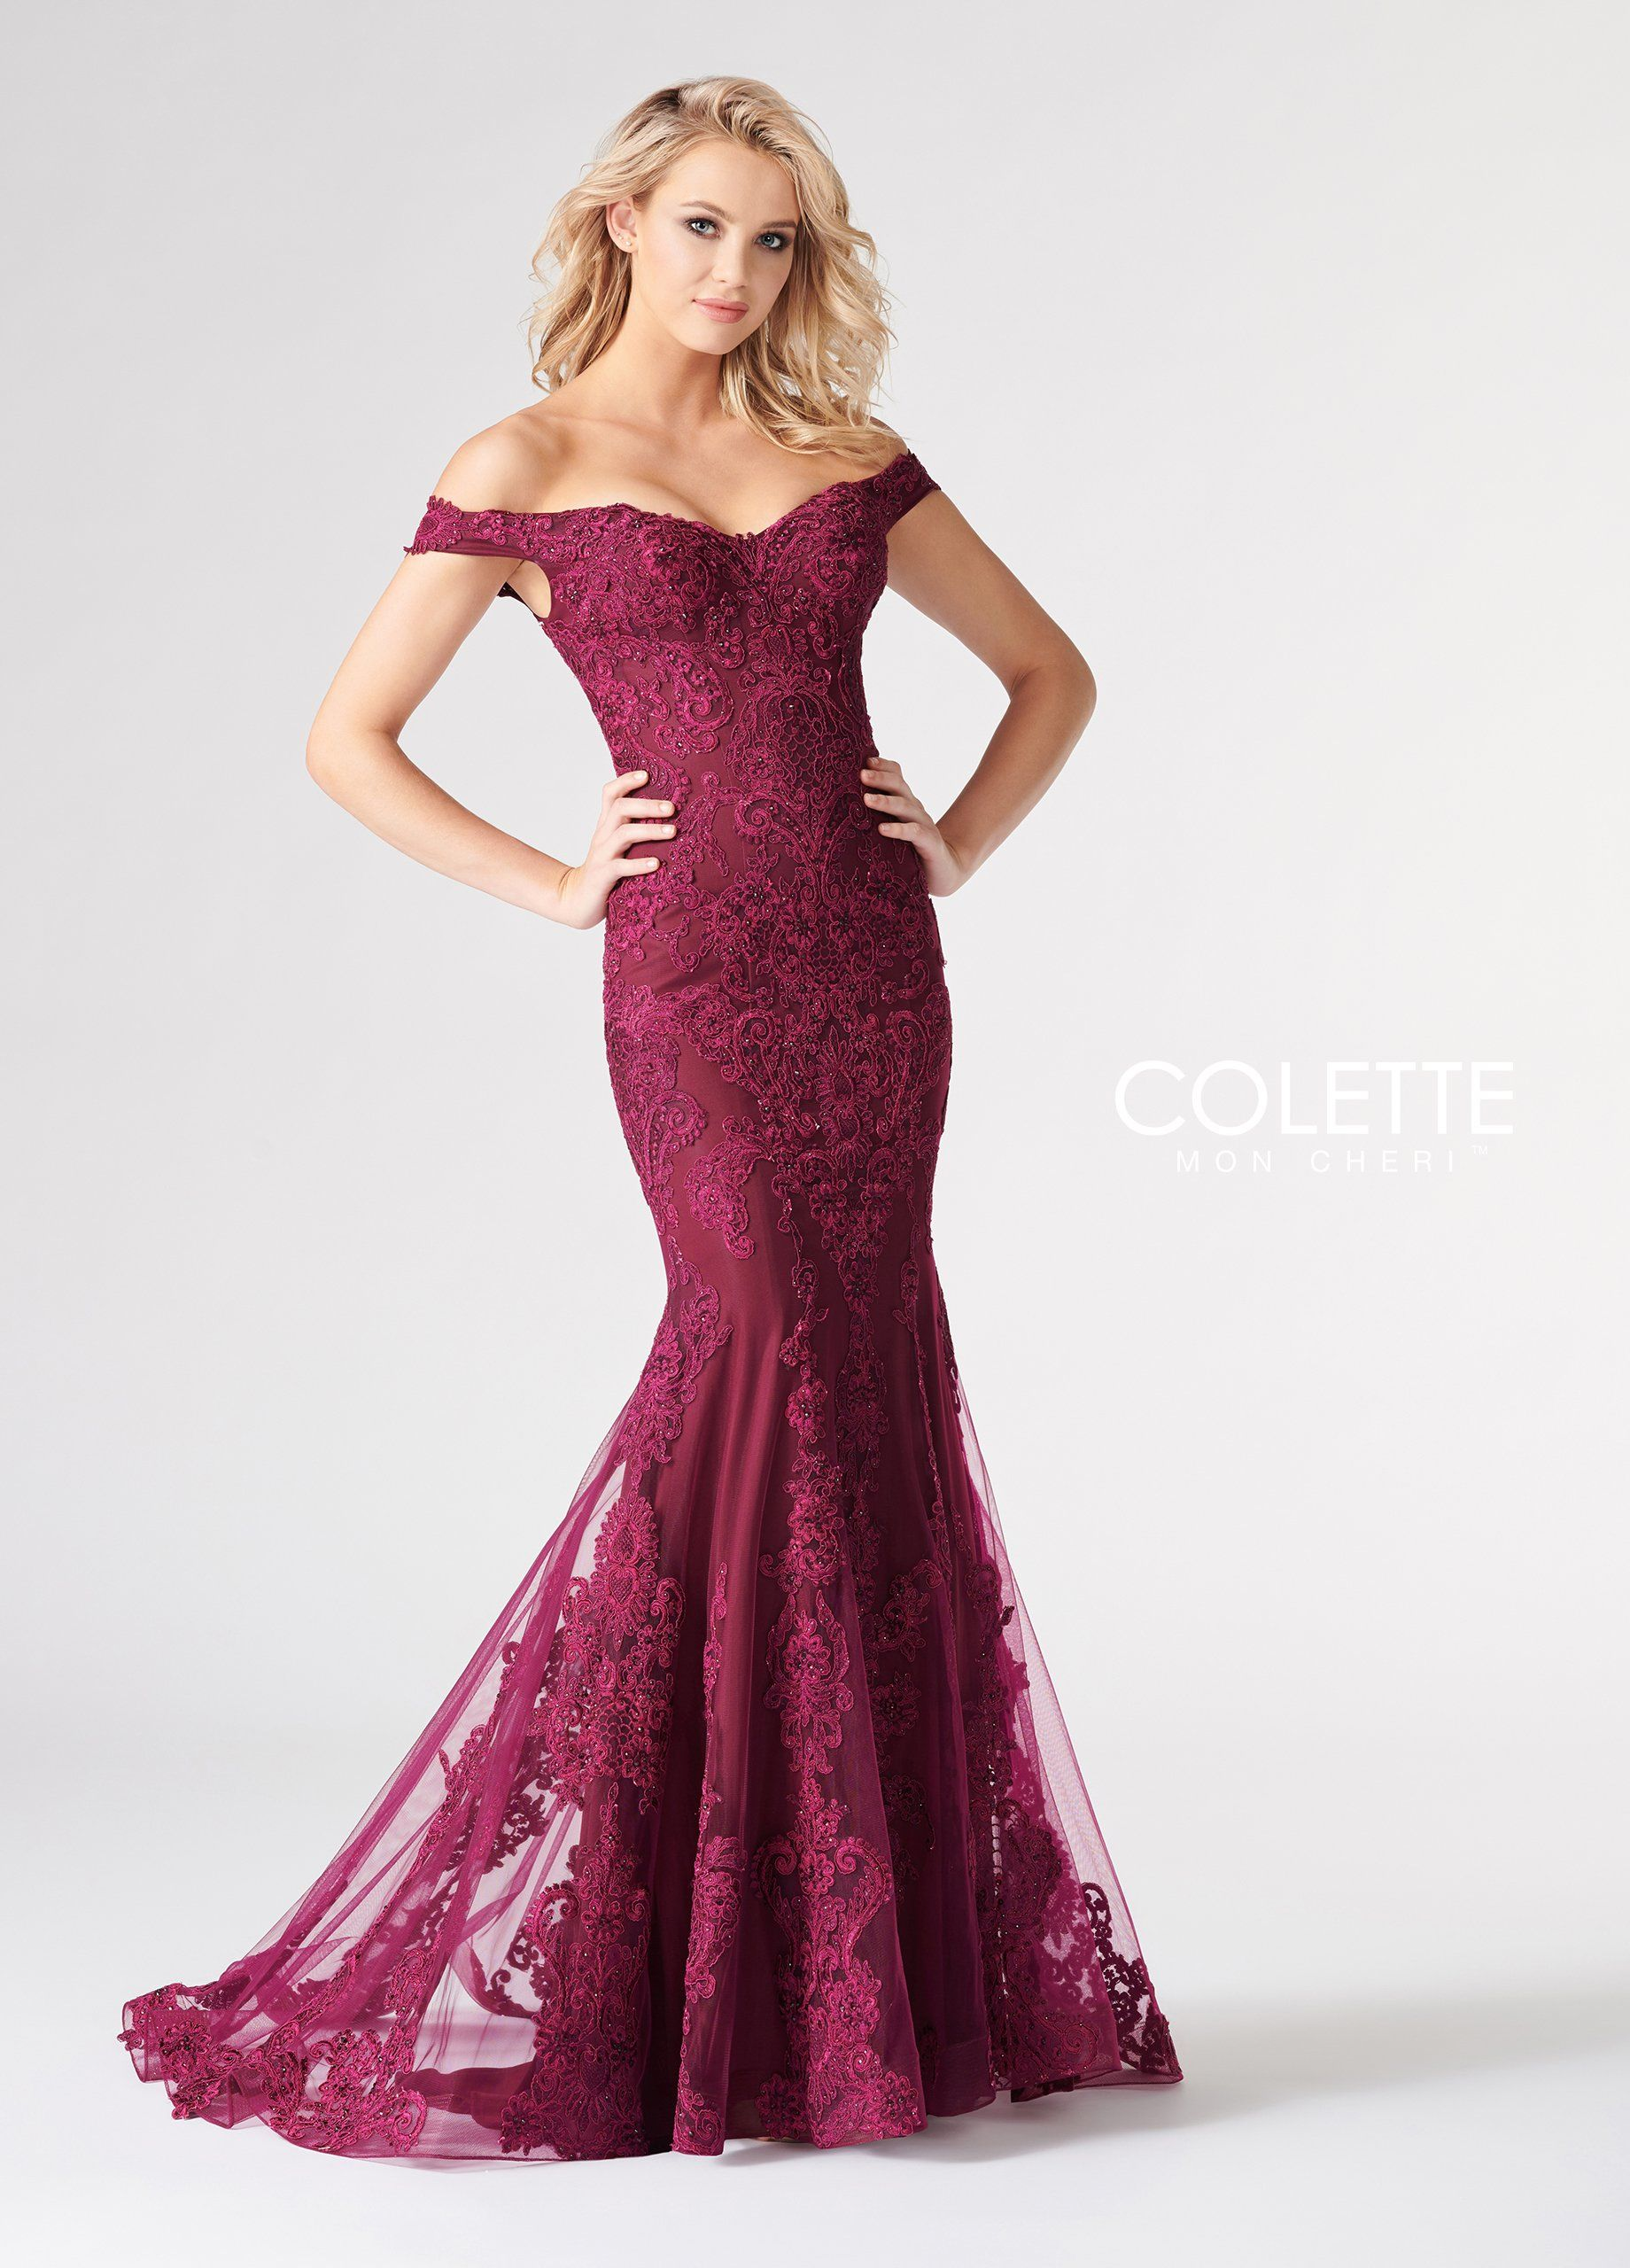 ea4a5885 Colette CL19814 Cranberry Off the Shoulder Lace Fit and Flare Prom Dress